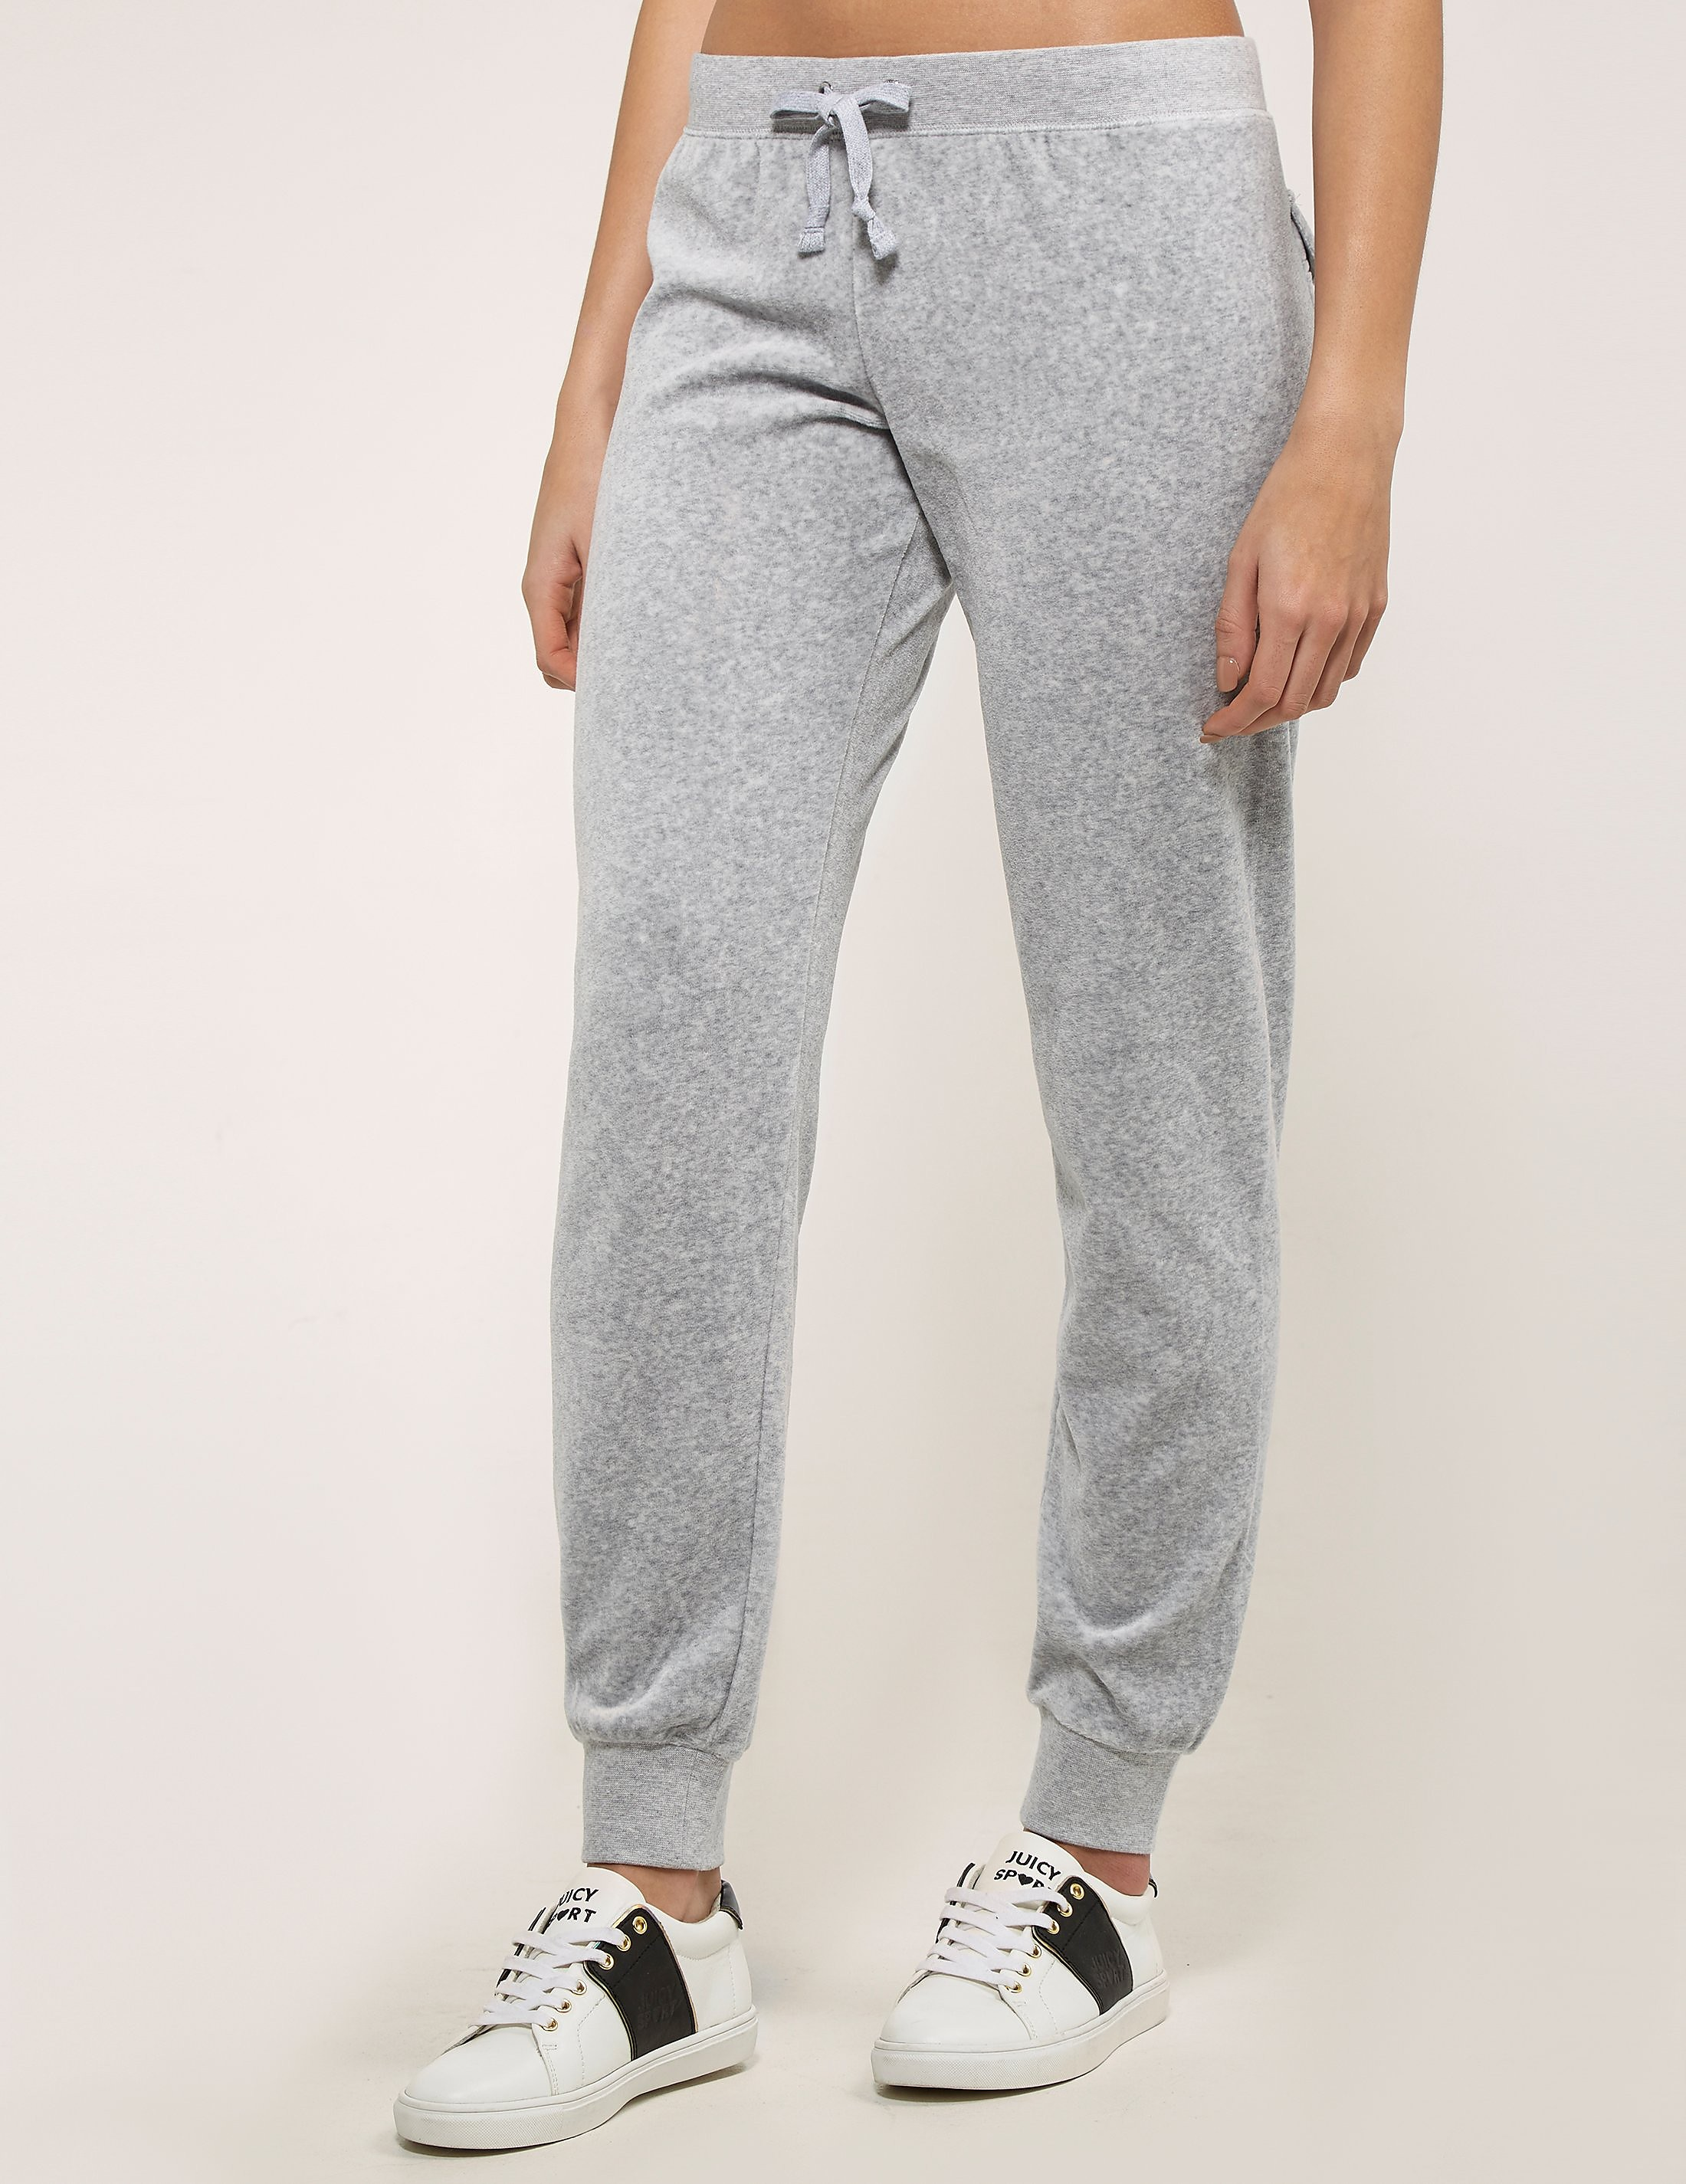 Juicy Couture Zuma Pant